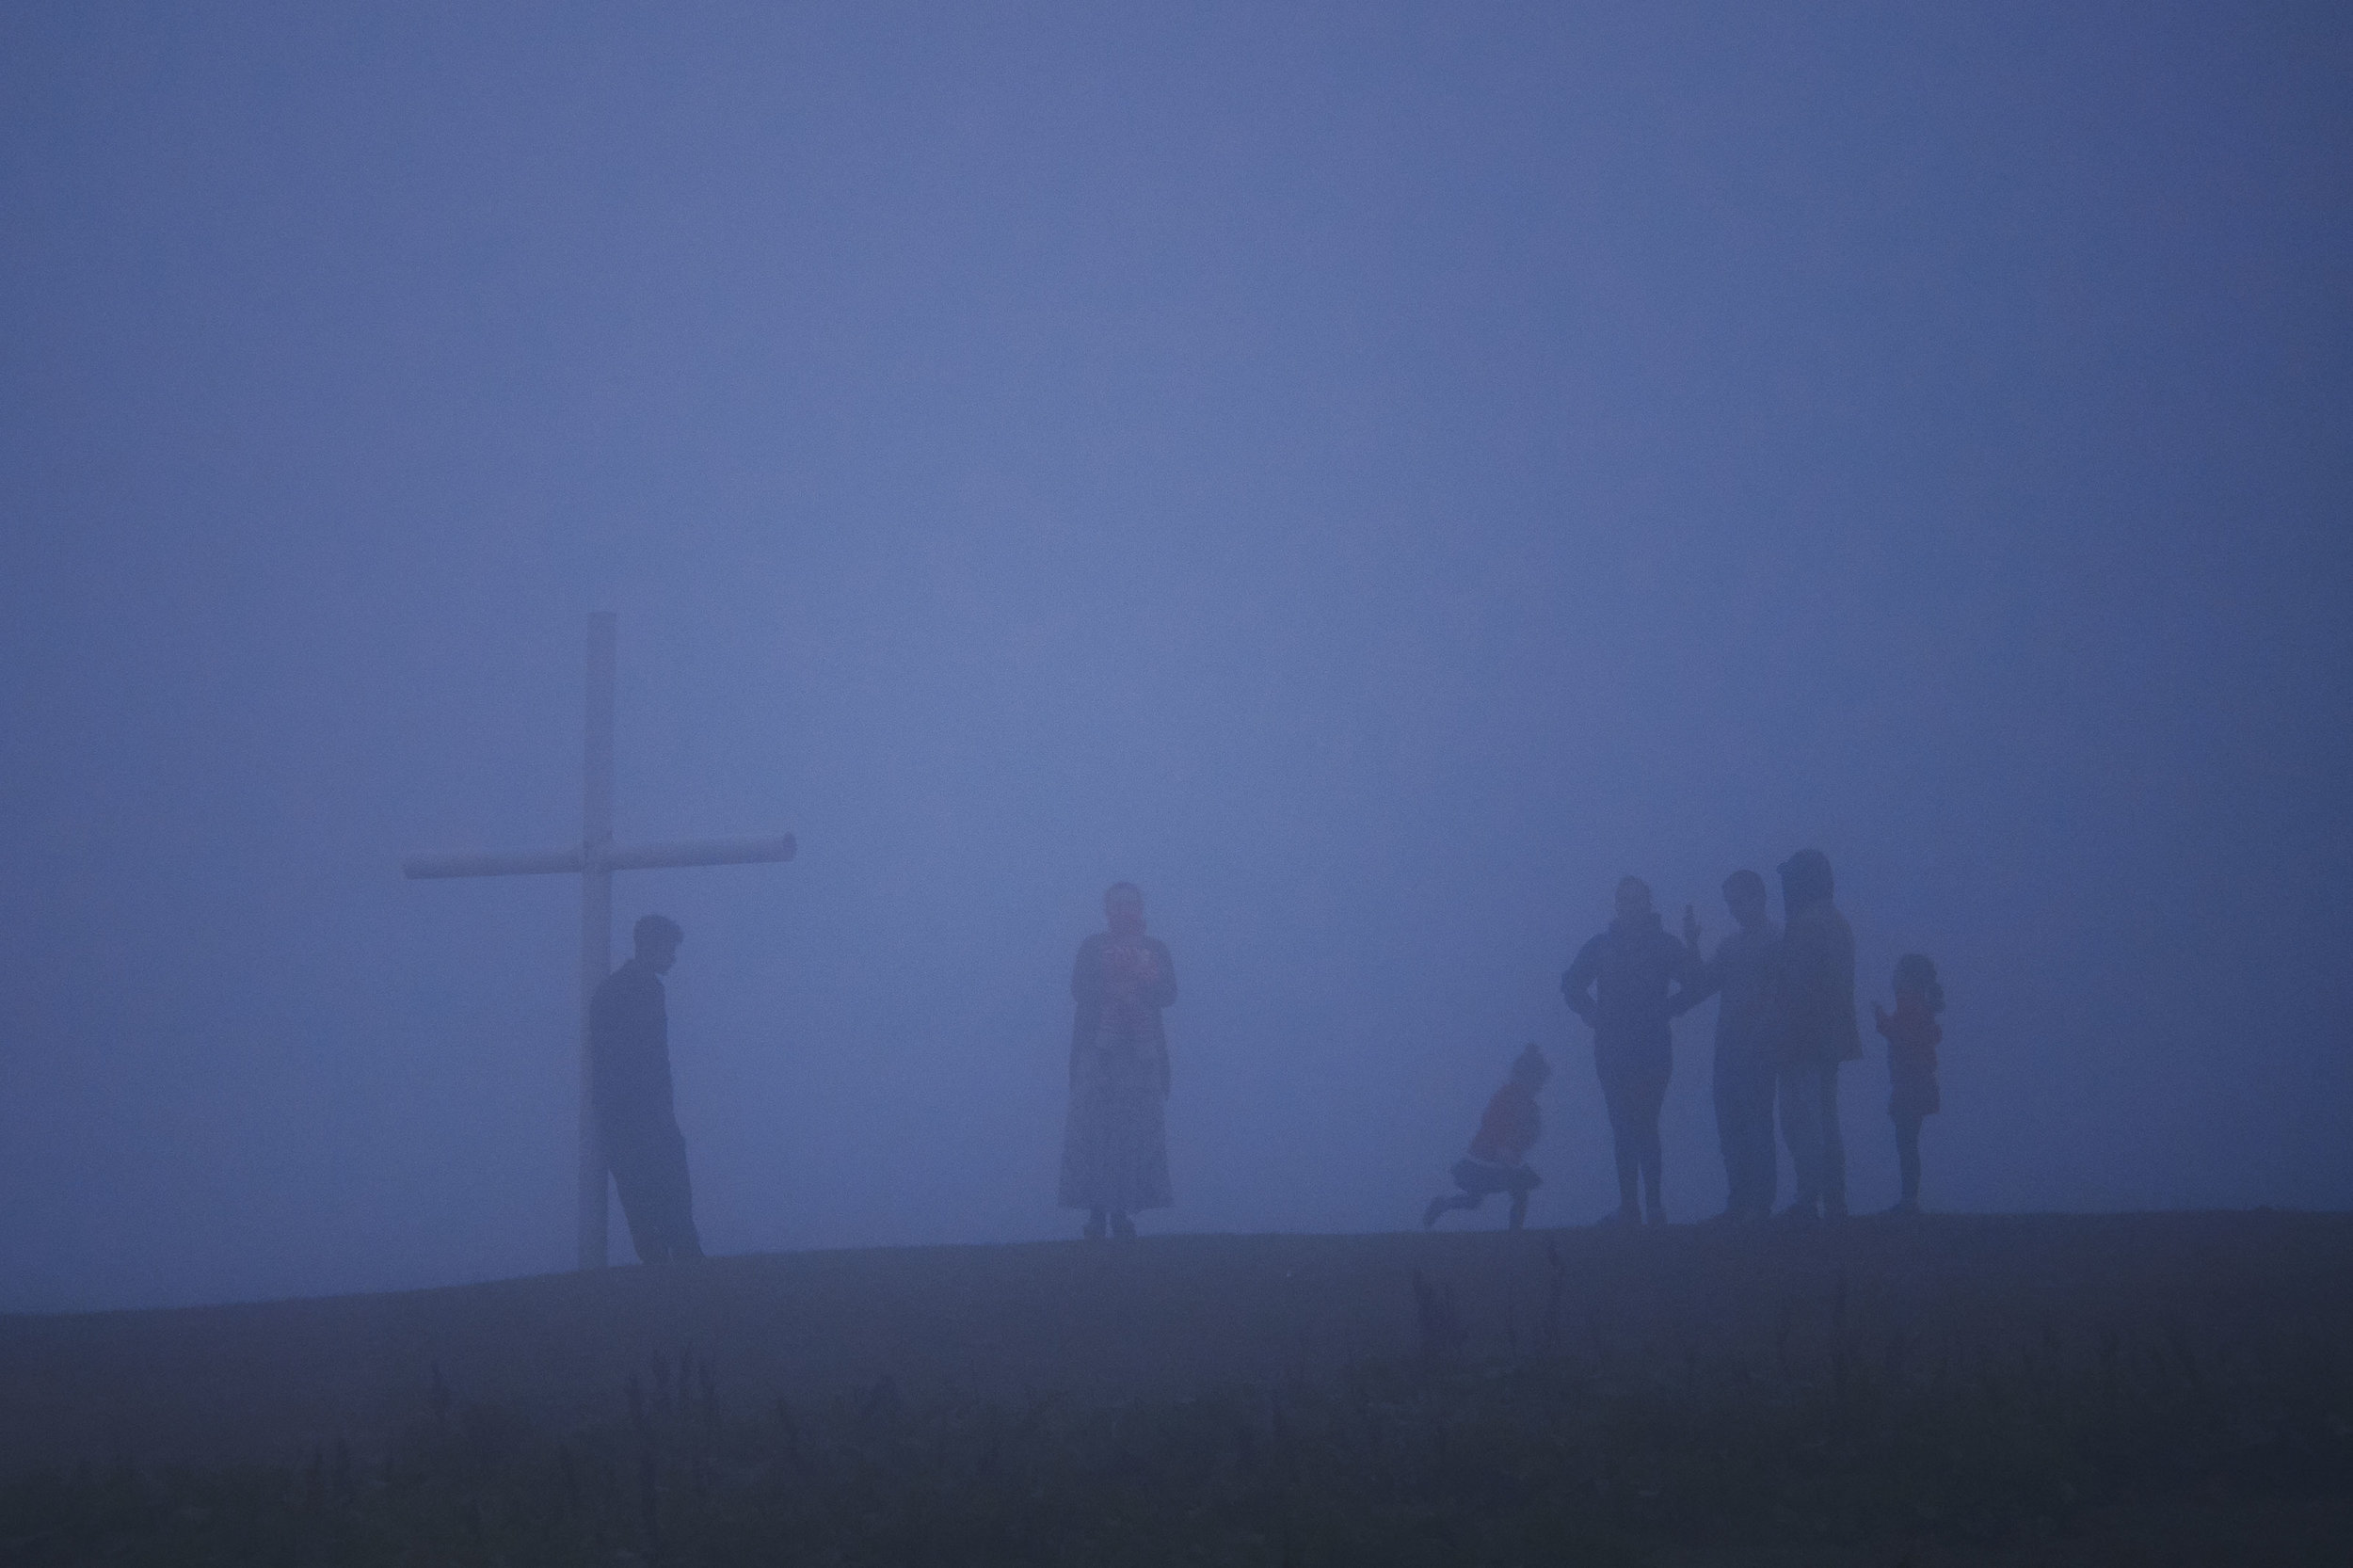 travel-photography-tips-people-in-fog